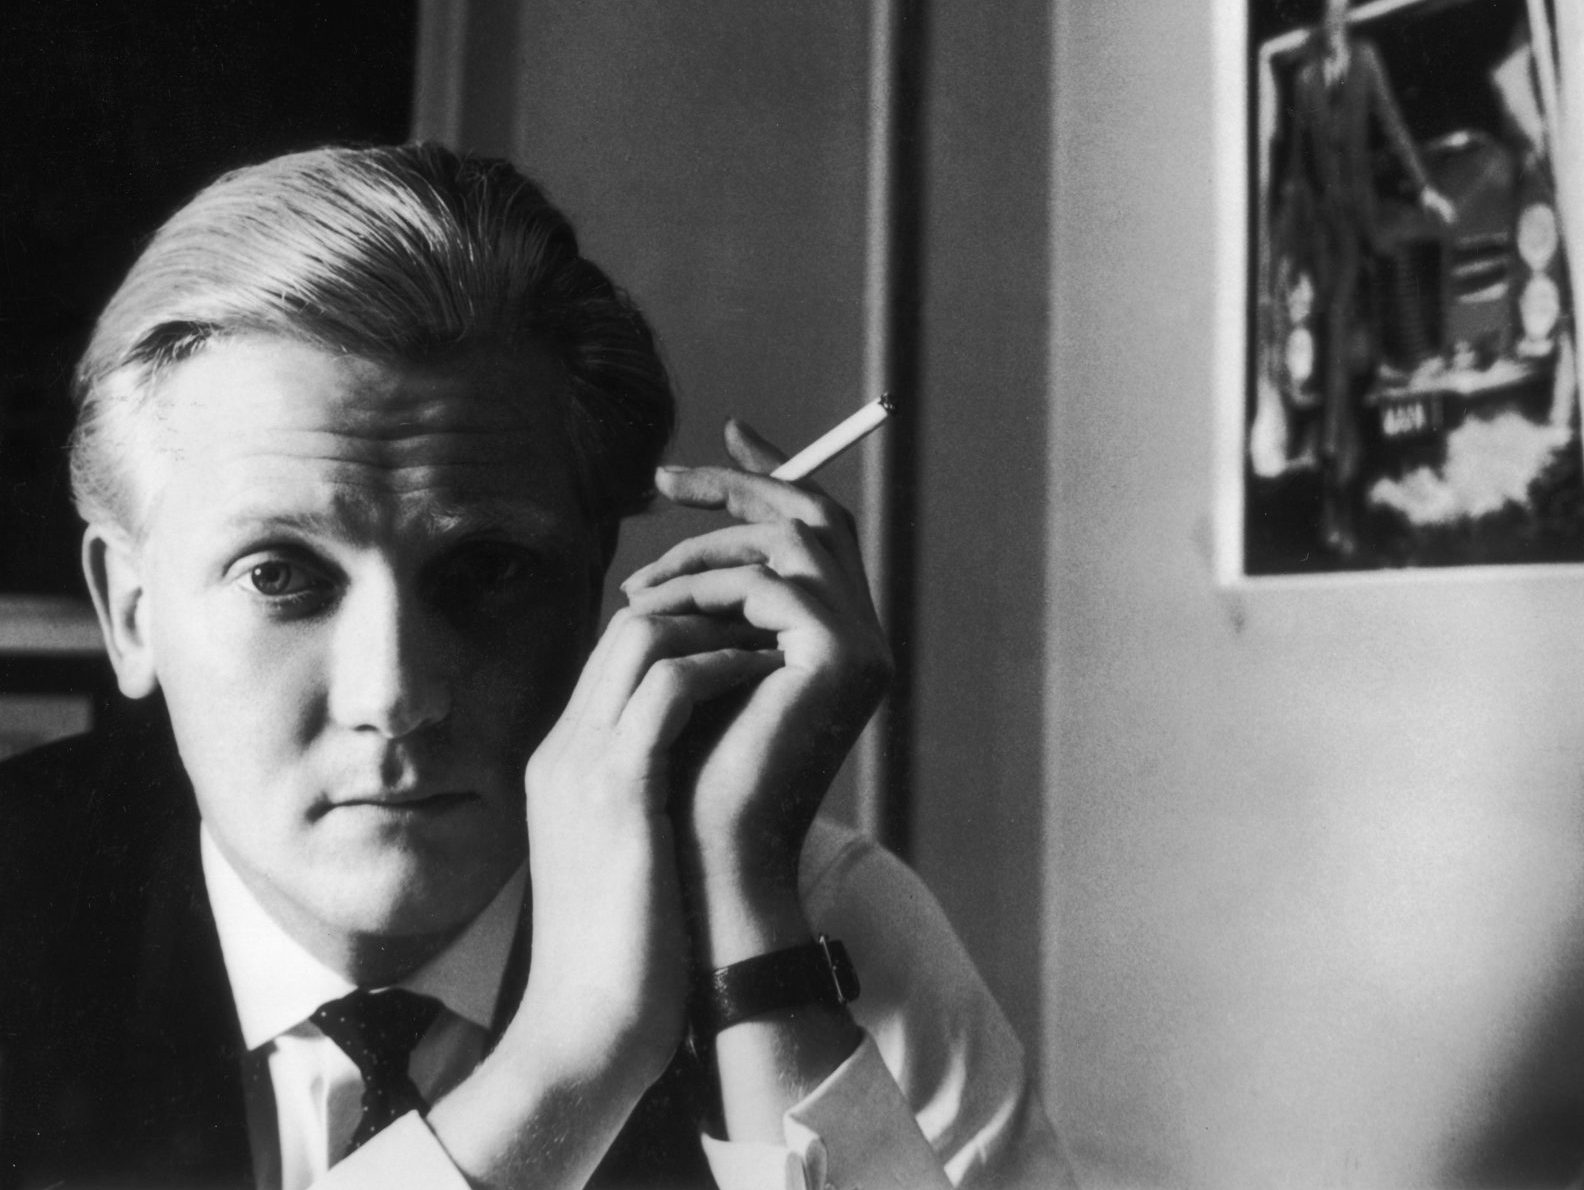 Michael Heseltine pictured in 1956, the year he applied for the Conservative Party parliamentary candidates' list and ten years before he was first elected as an MP. Photo: John Cole/Getty Images.